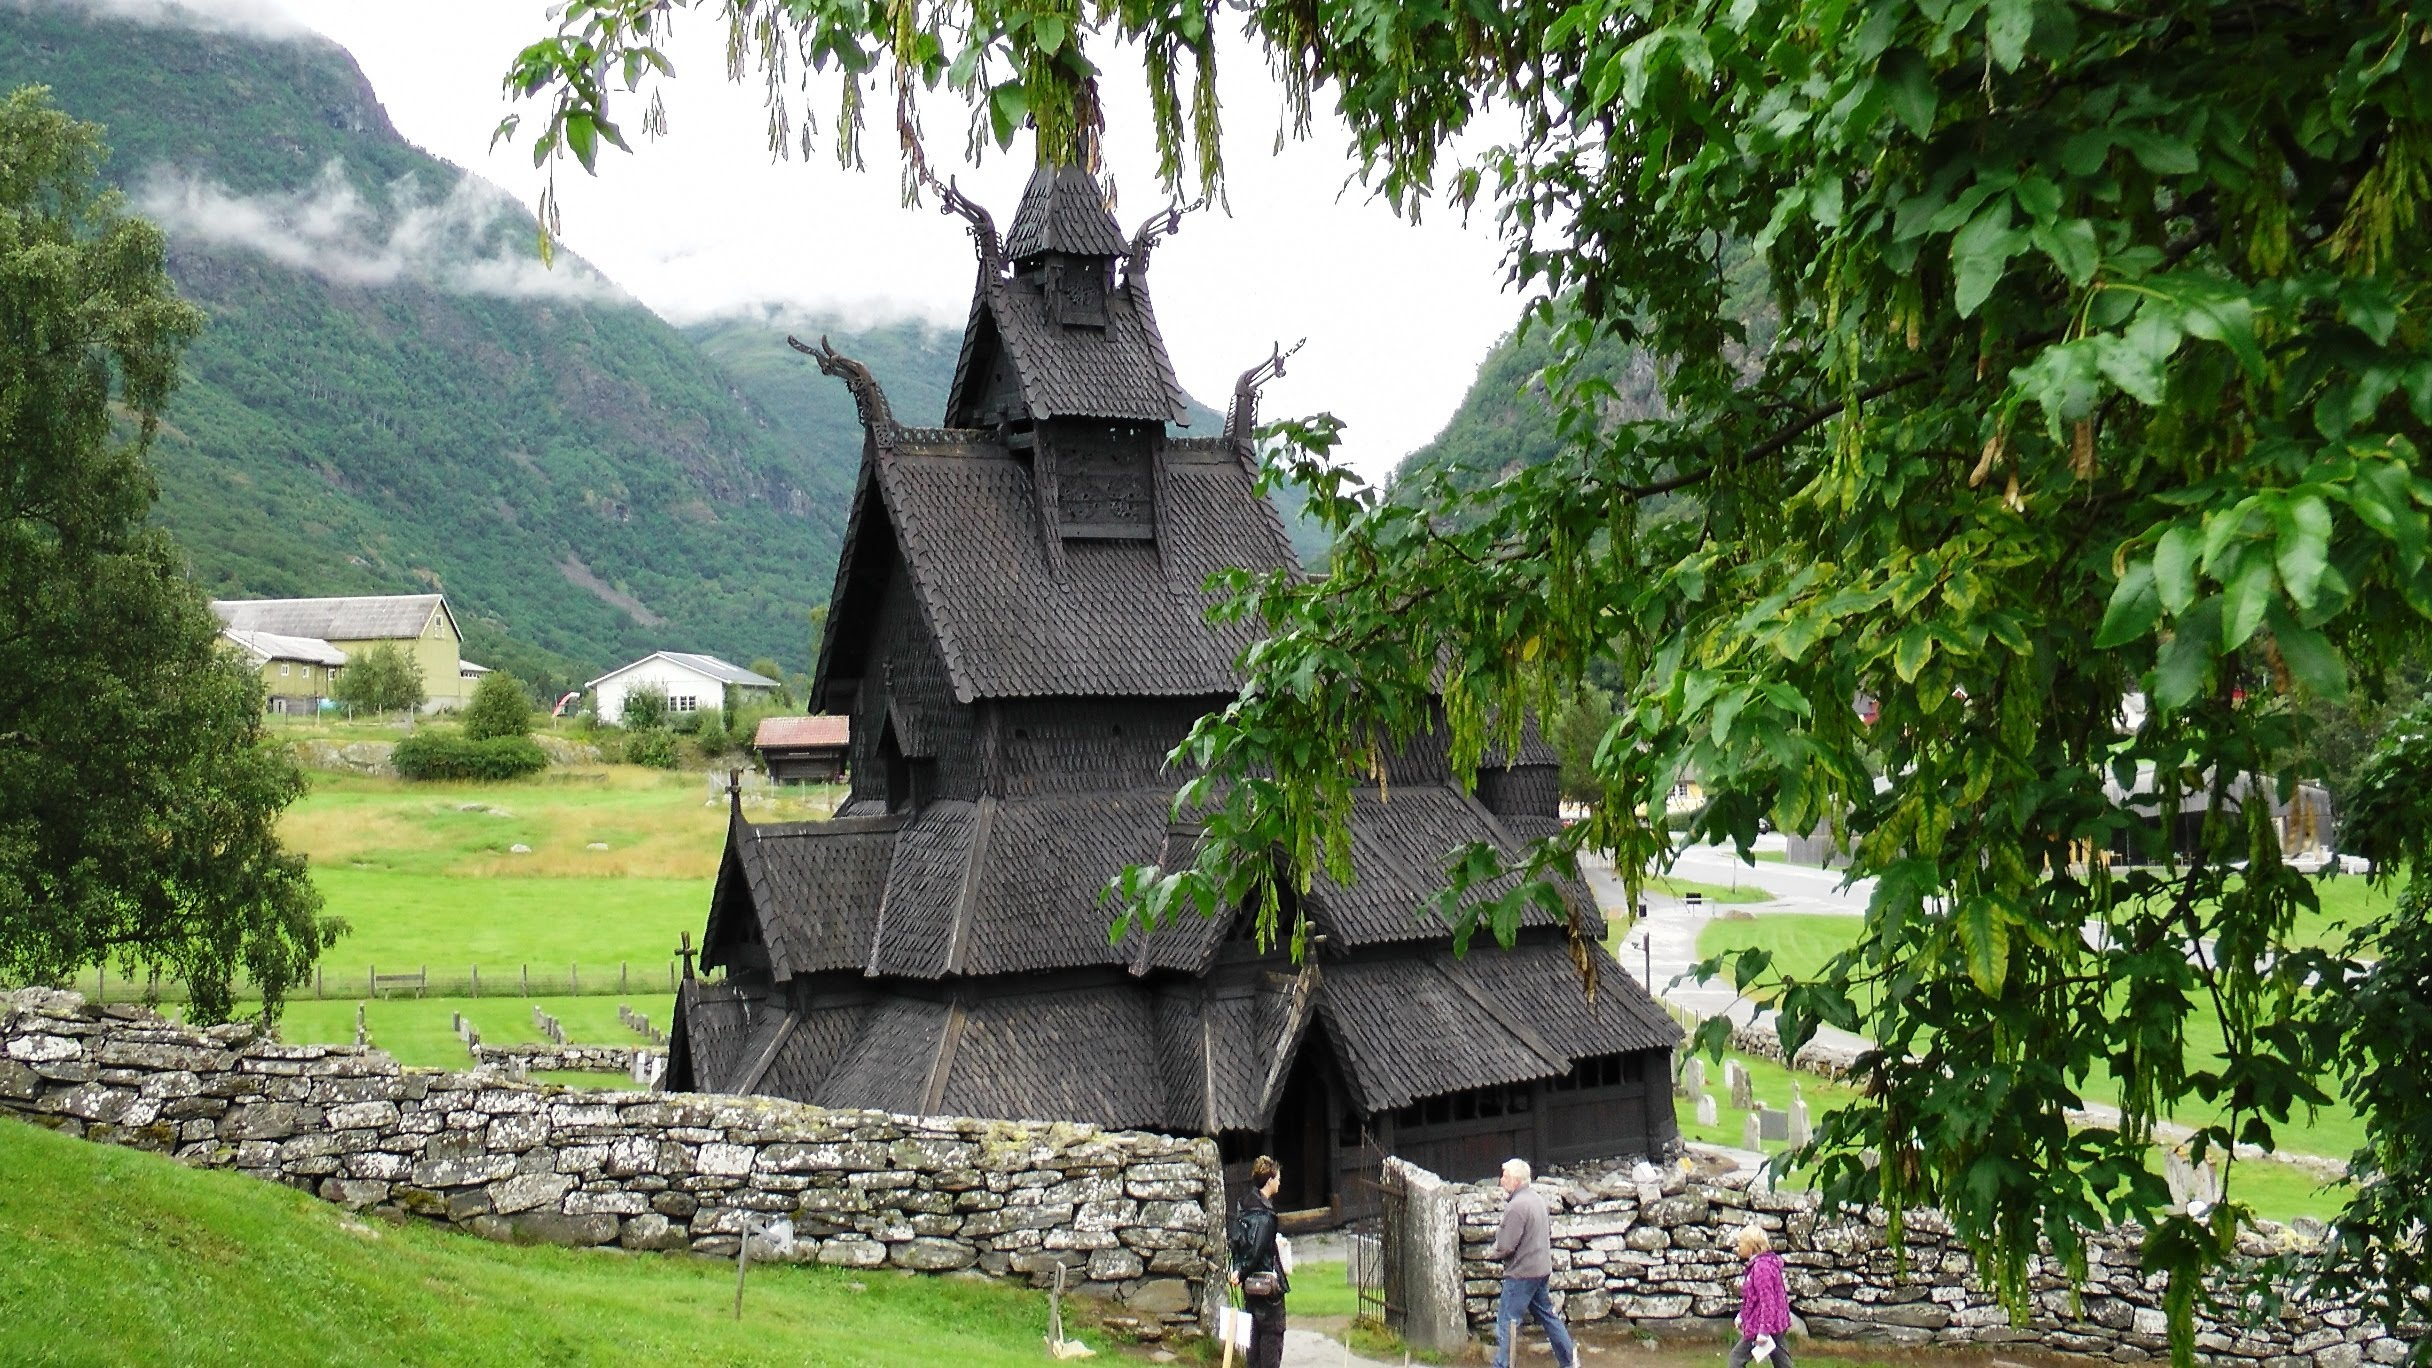 borgund-stave-church-norway-16